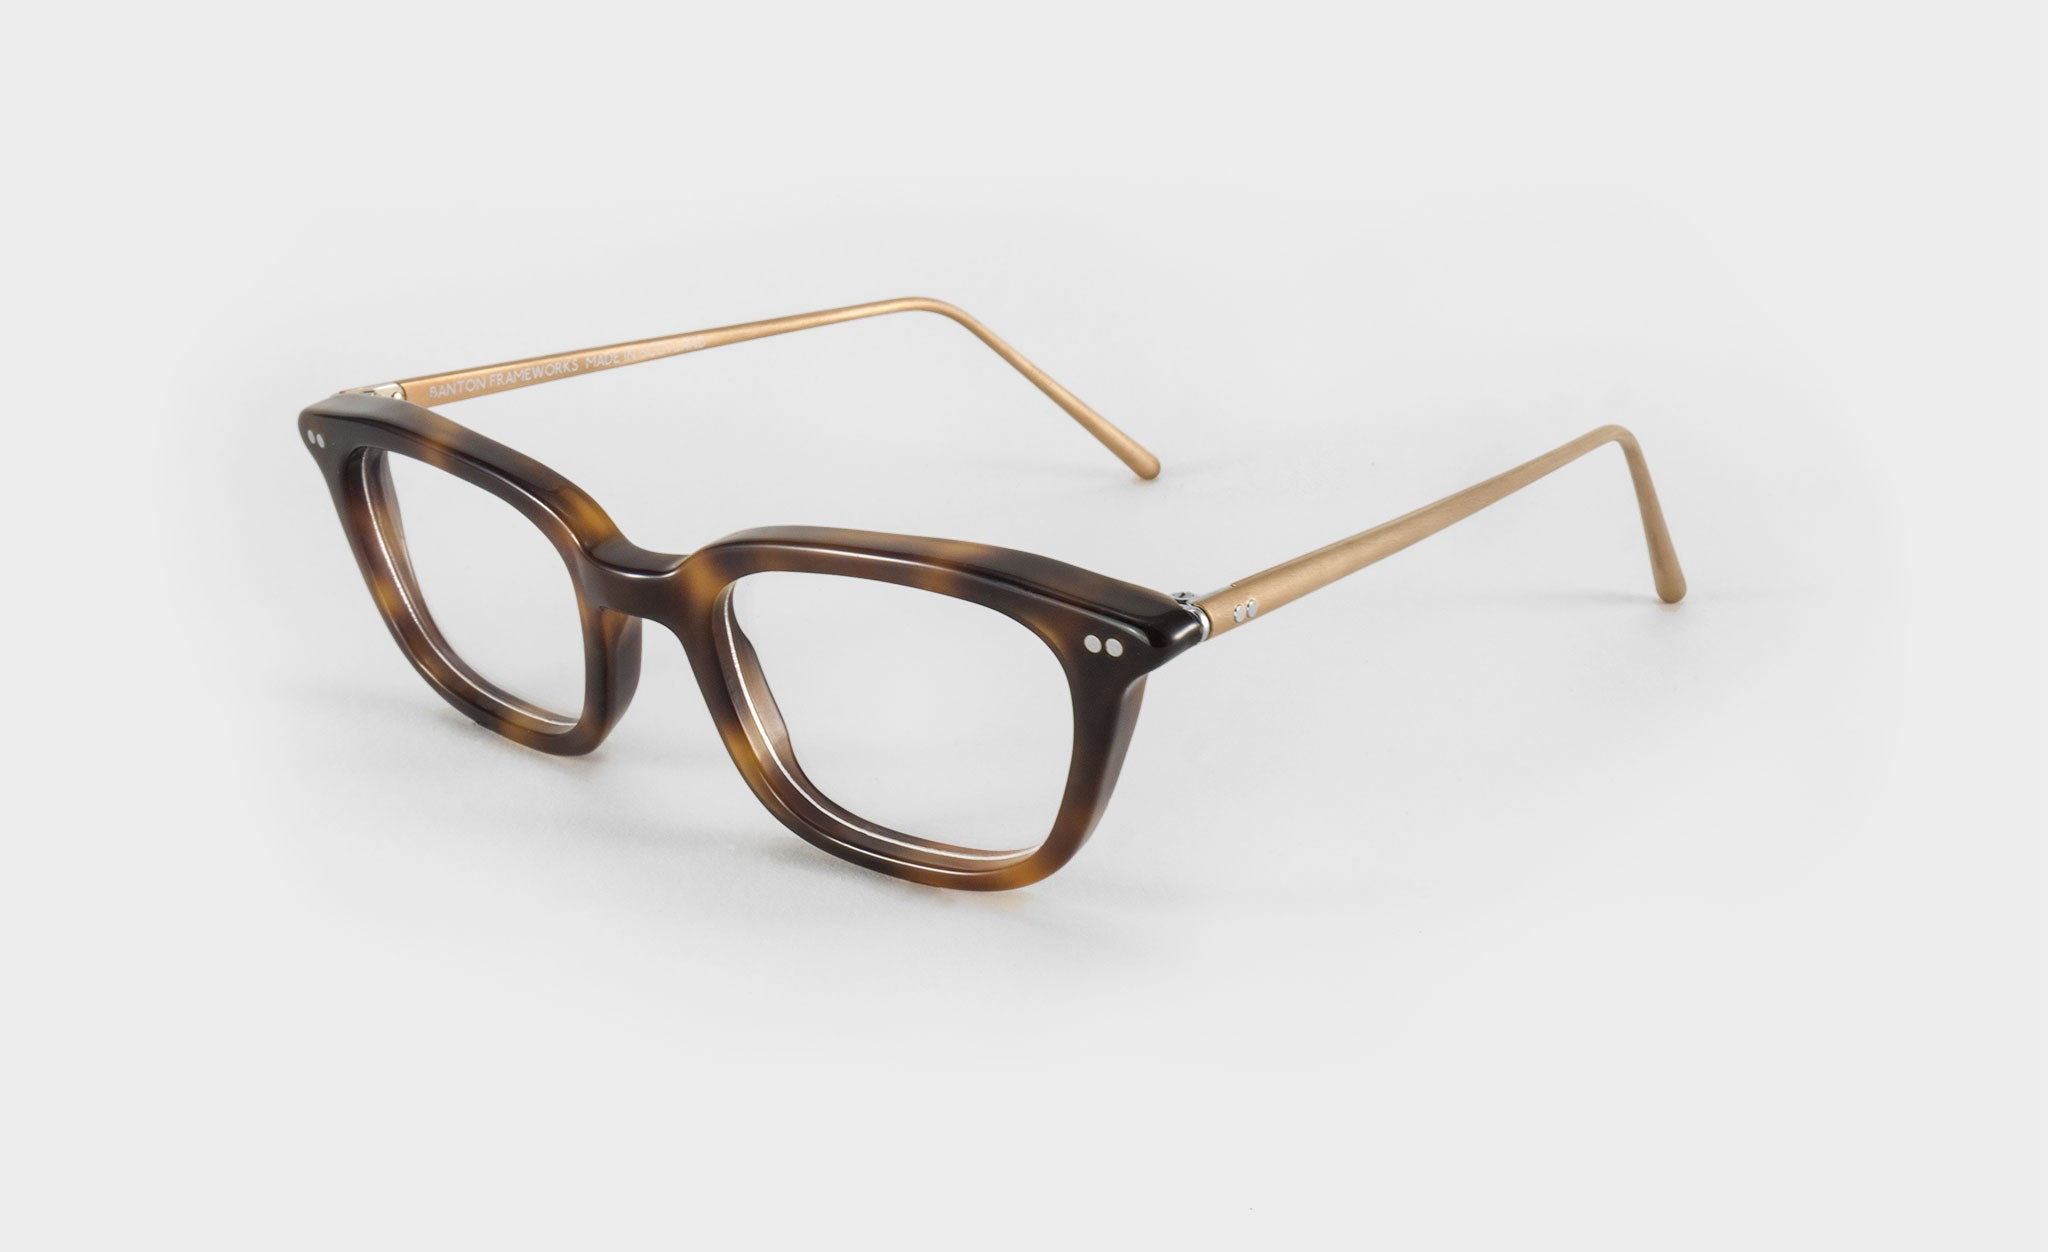 rectangular tortoise shell glasses frame side view